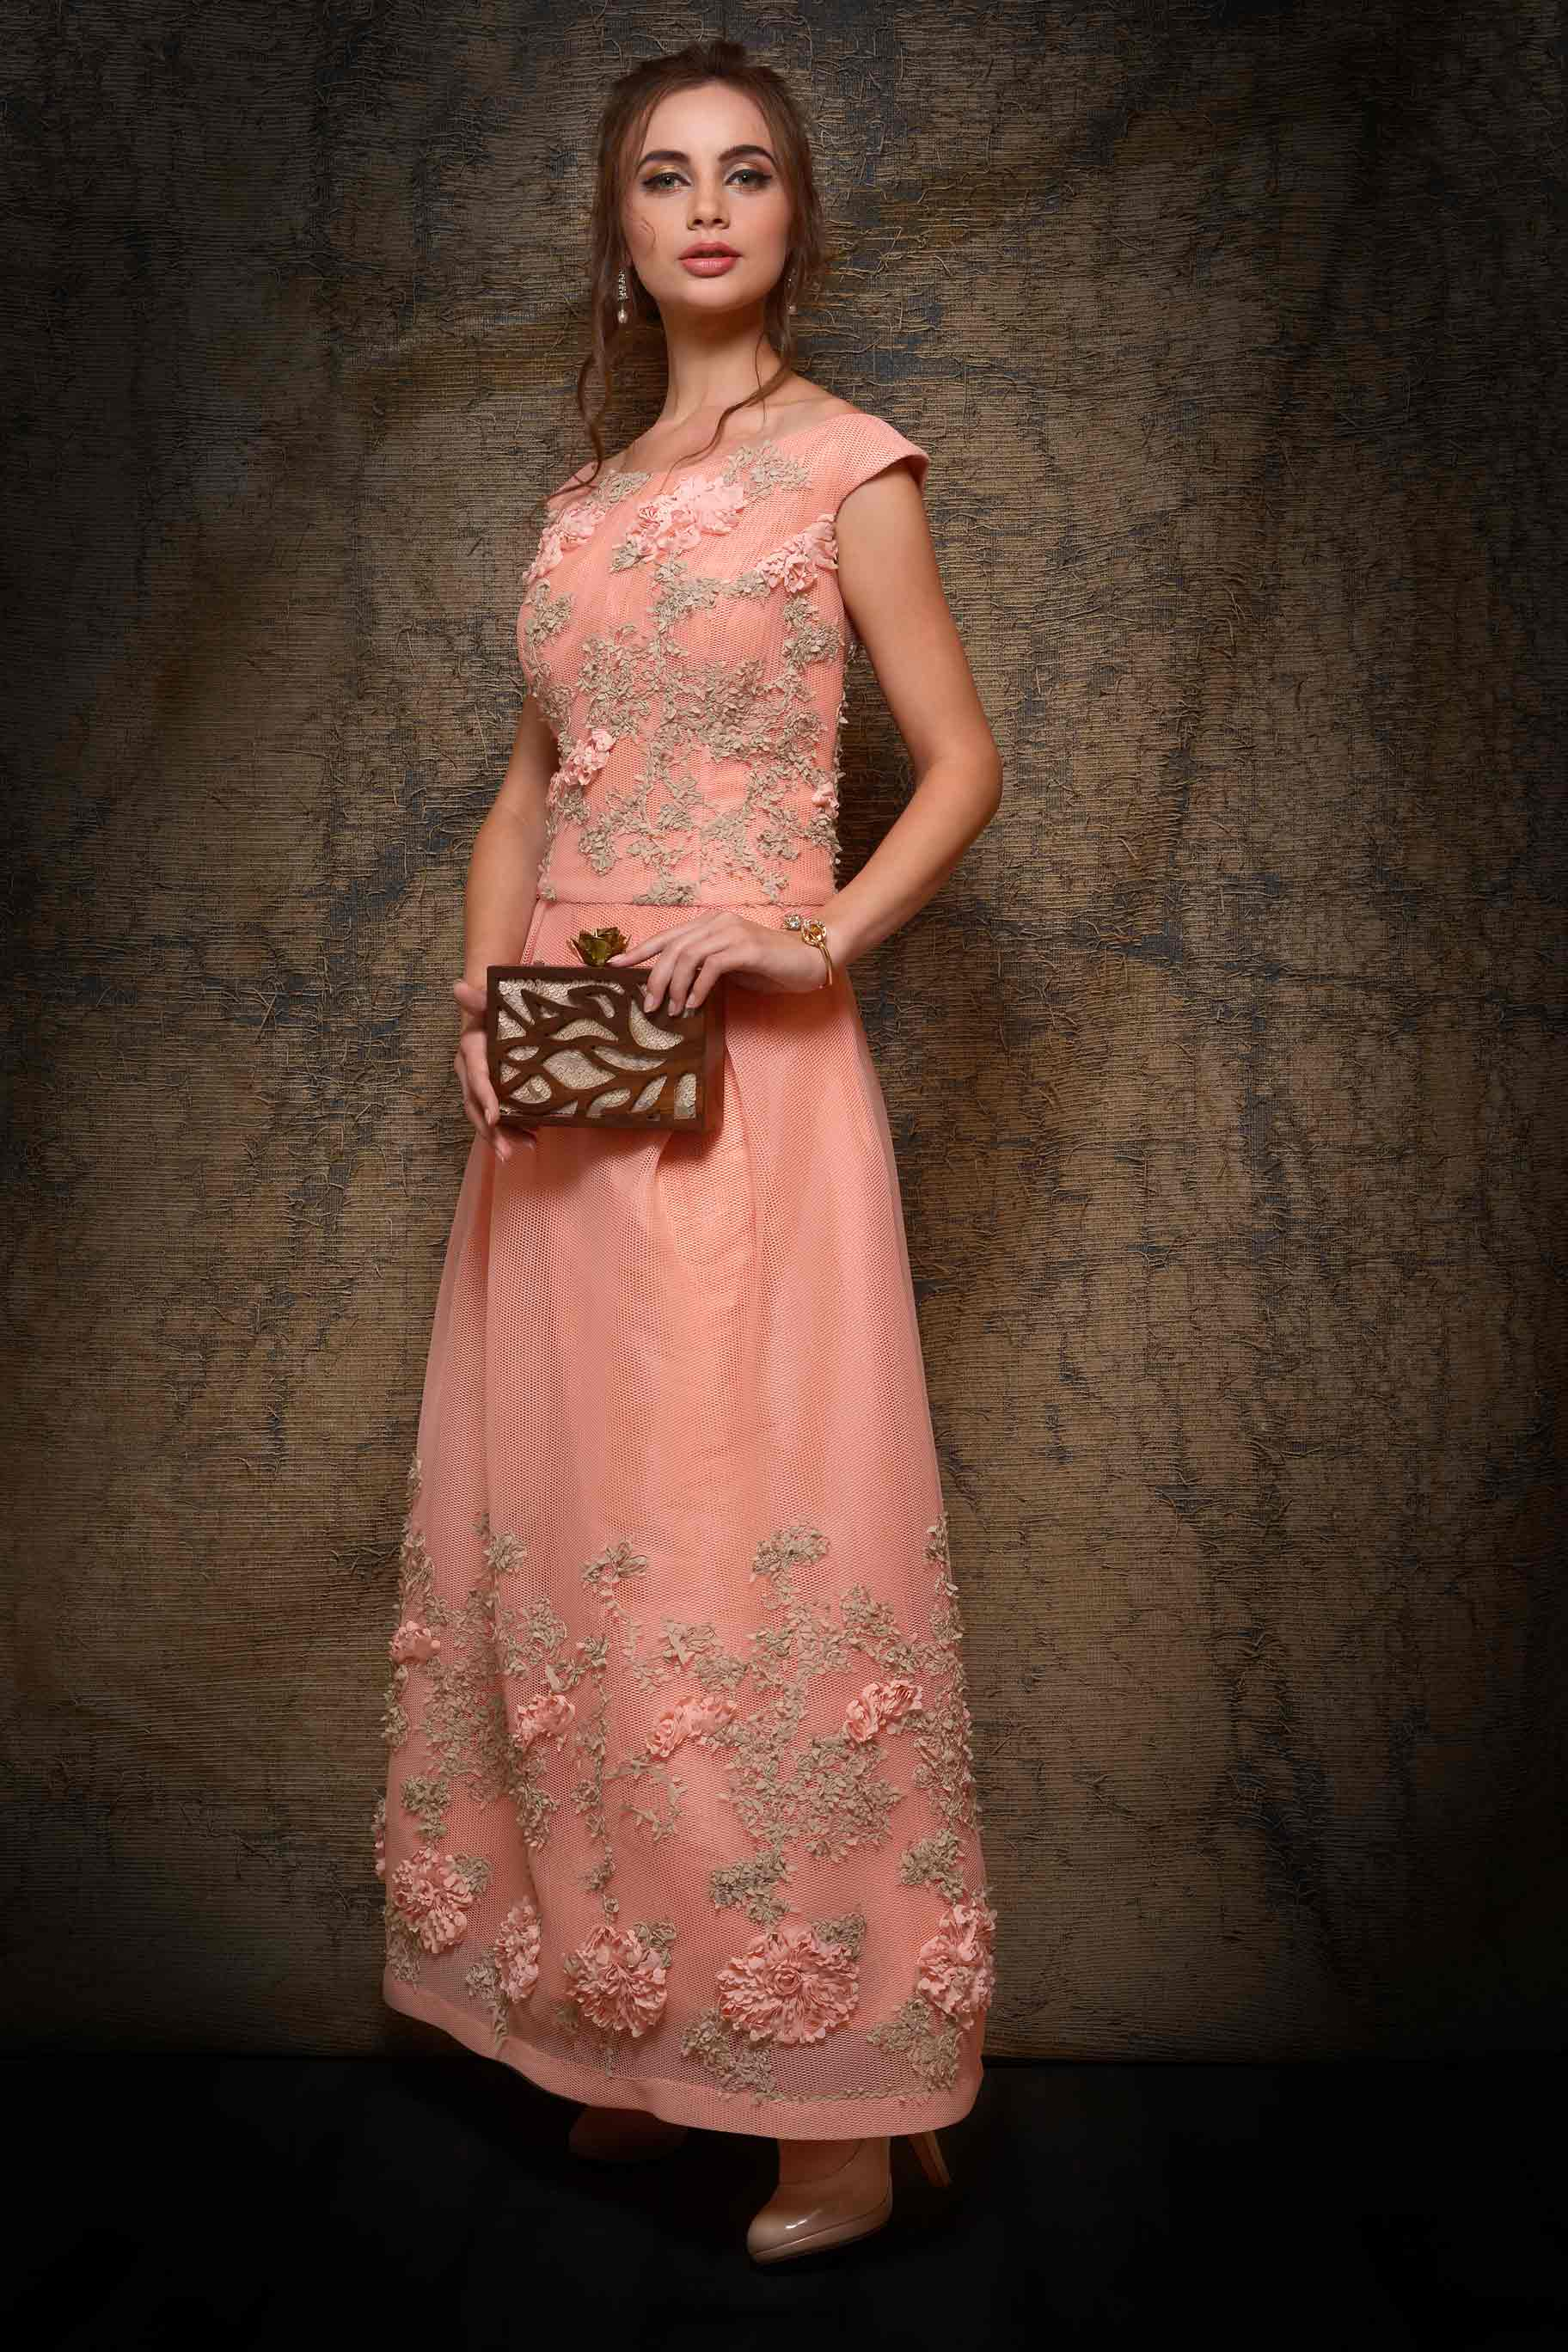 Shop elegant peach neoprene designer dress online in USA. Make your Indian look stylish with exquisite Indian designer dresses from Pure Elegance Indian clothing store for women in USA or shop online.-full view